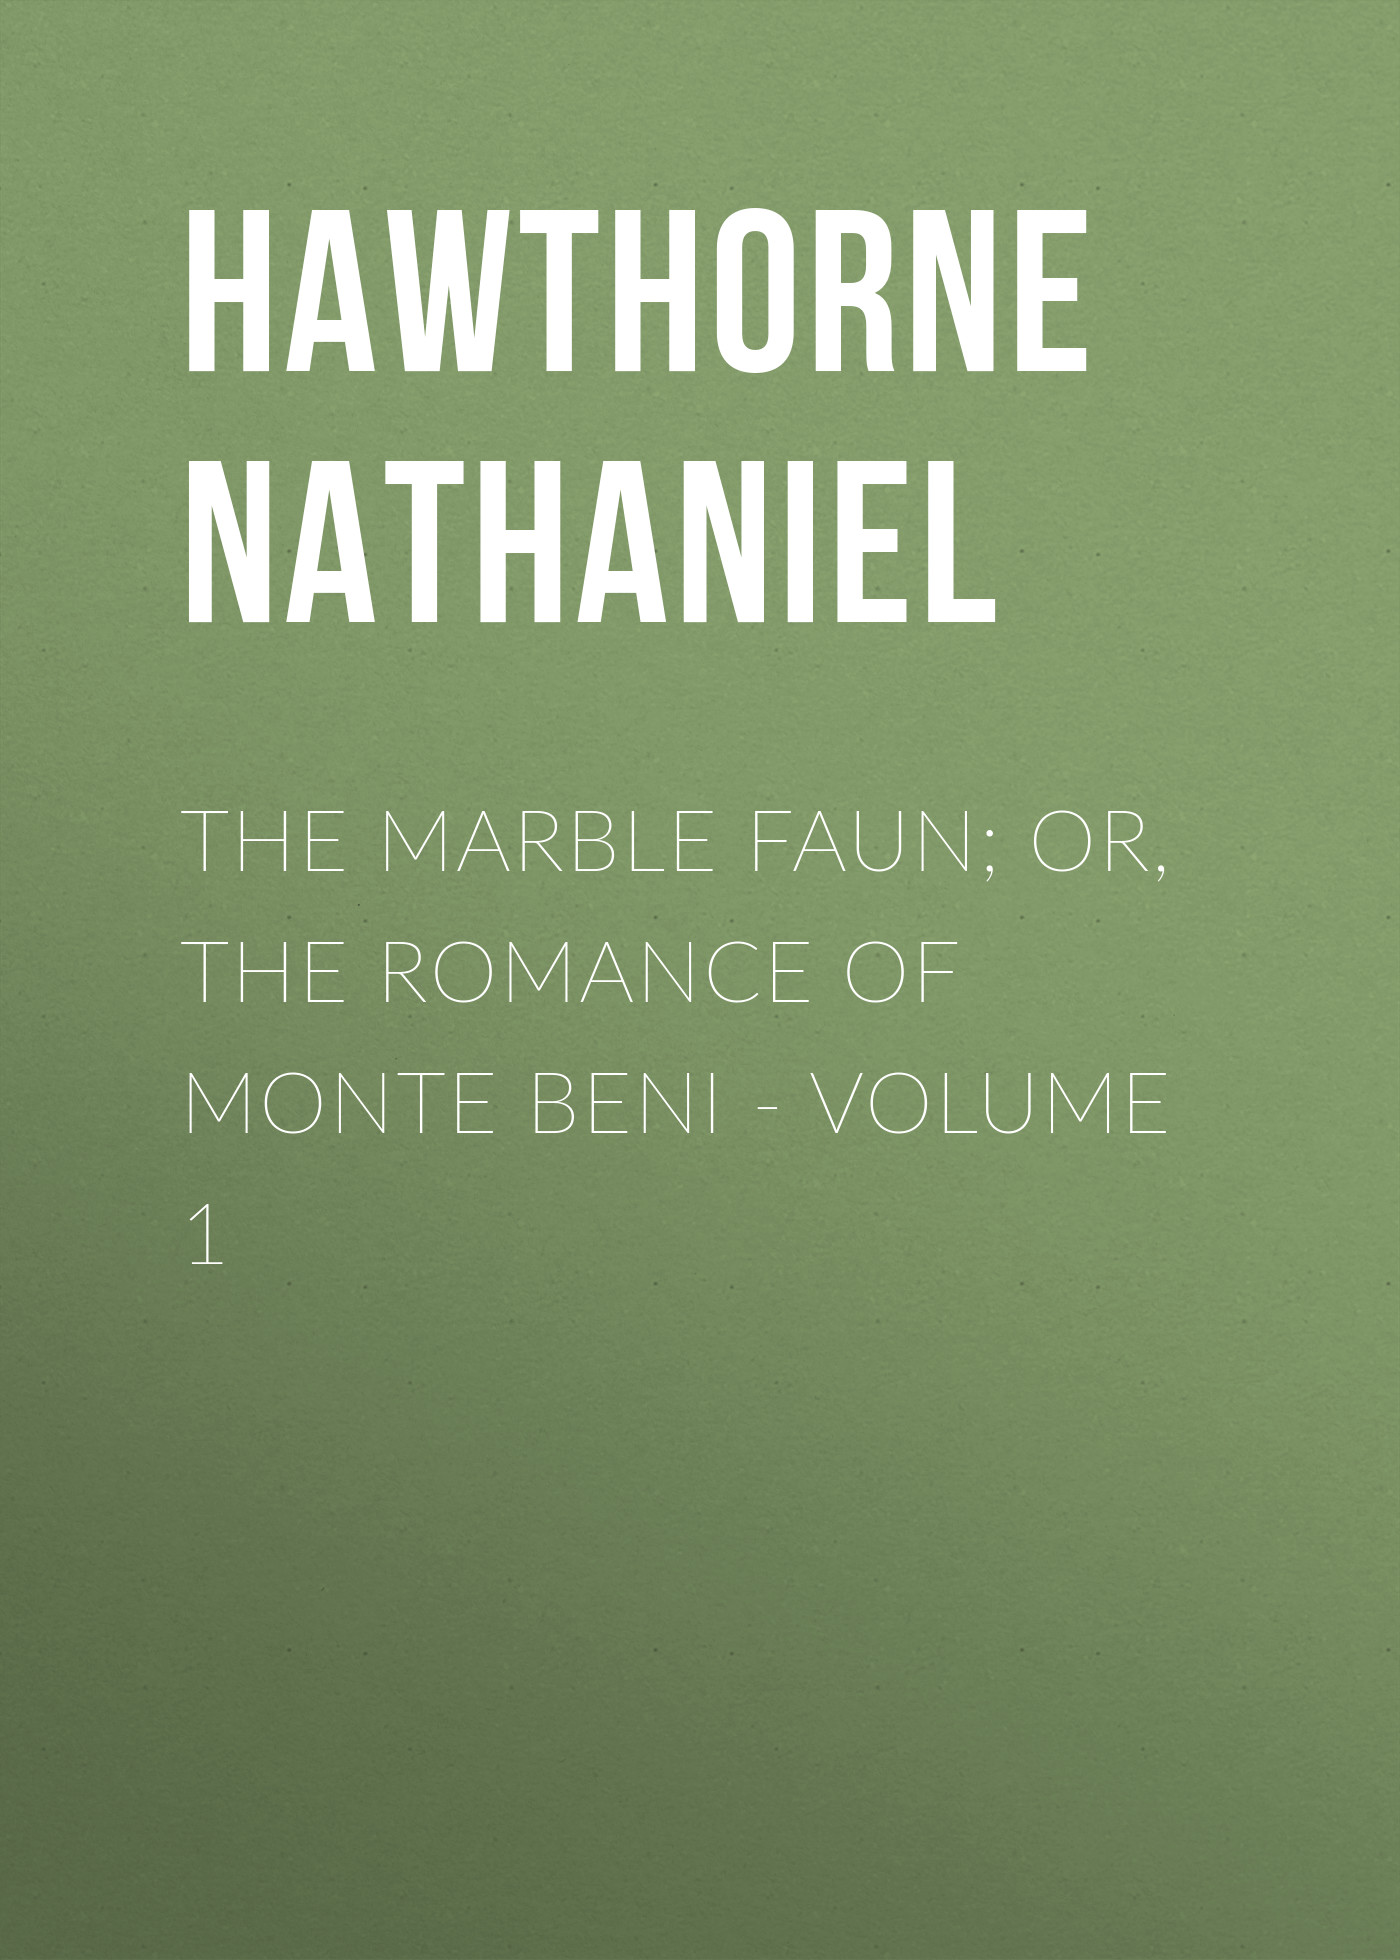 Hawthorne Nathaniel The Marble Faun; Or, The Romance of Monte Beni - Volume 1 the marble faun